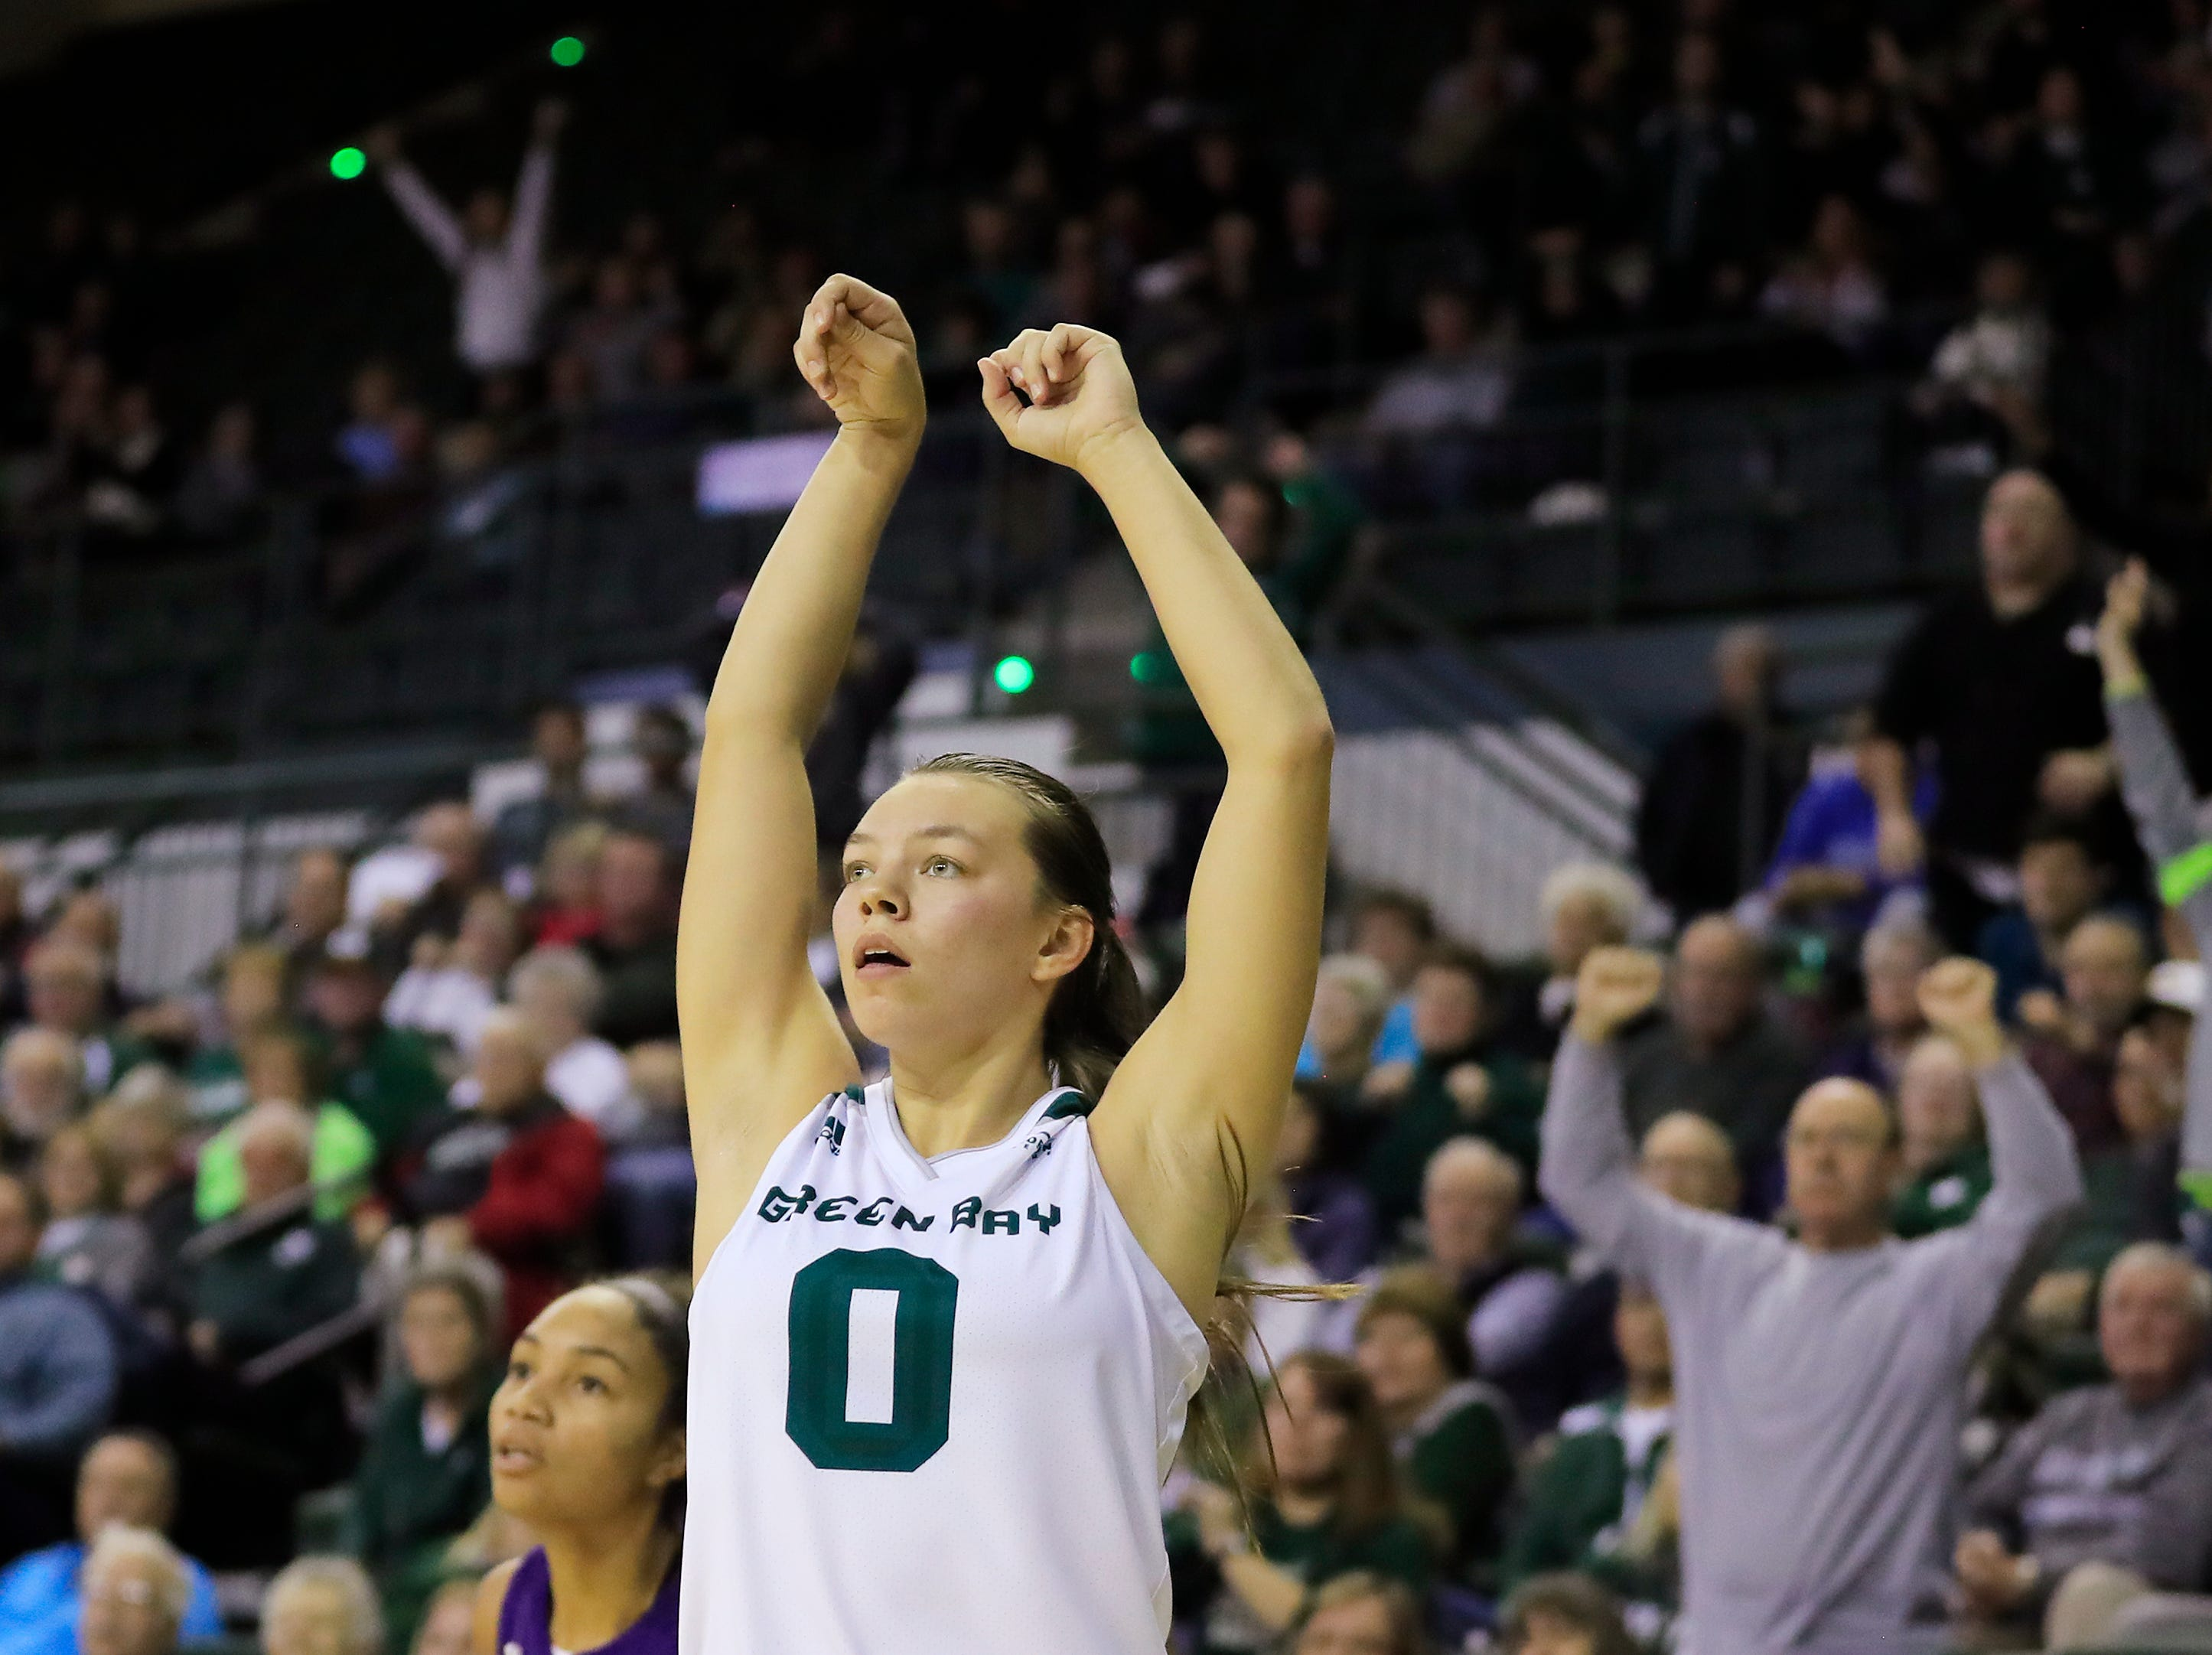 Green Bay Phoenix guard Hailey Oskey (0) watches a failed 3-point attempt in the final seconds against the Northwestern Wildcats in a women's NCAA basketball game at the Kress Center on Tuesday, November 6, 2018 in Green Bay, Wis.